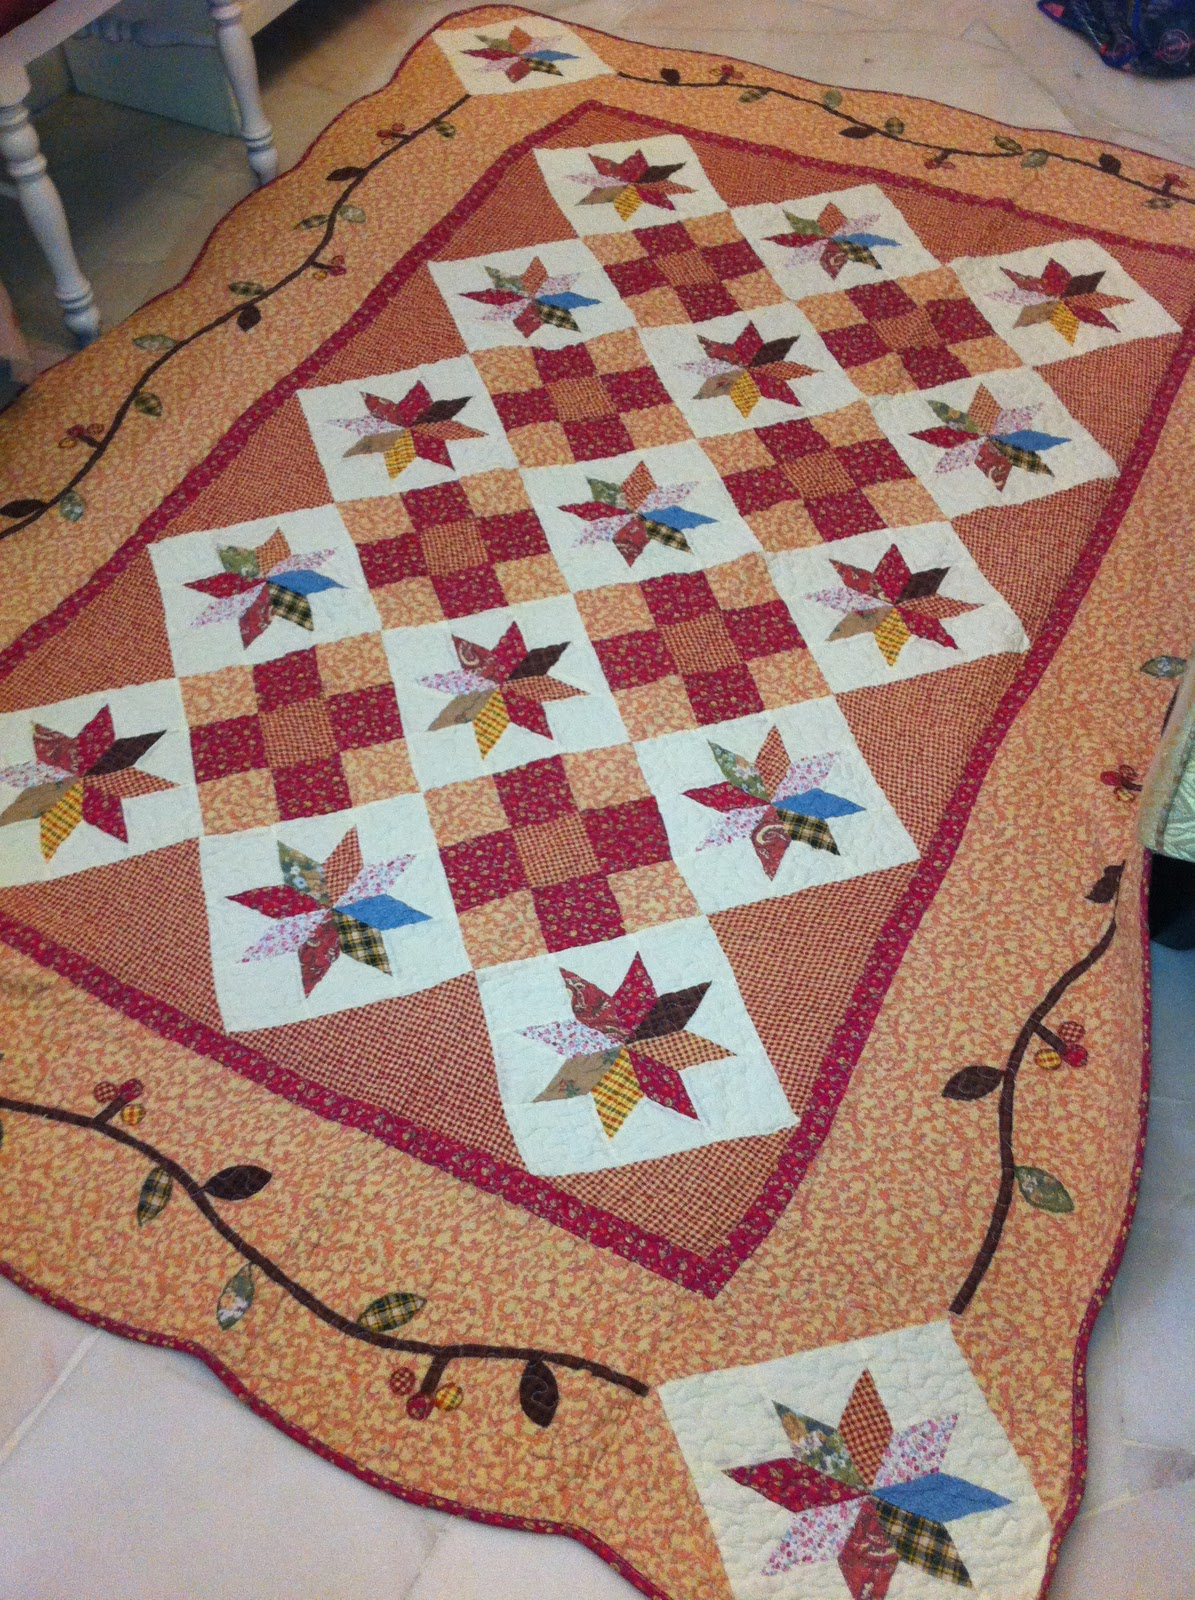 Displaying 18 gt images for handmade patchwork quilts